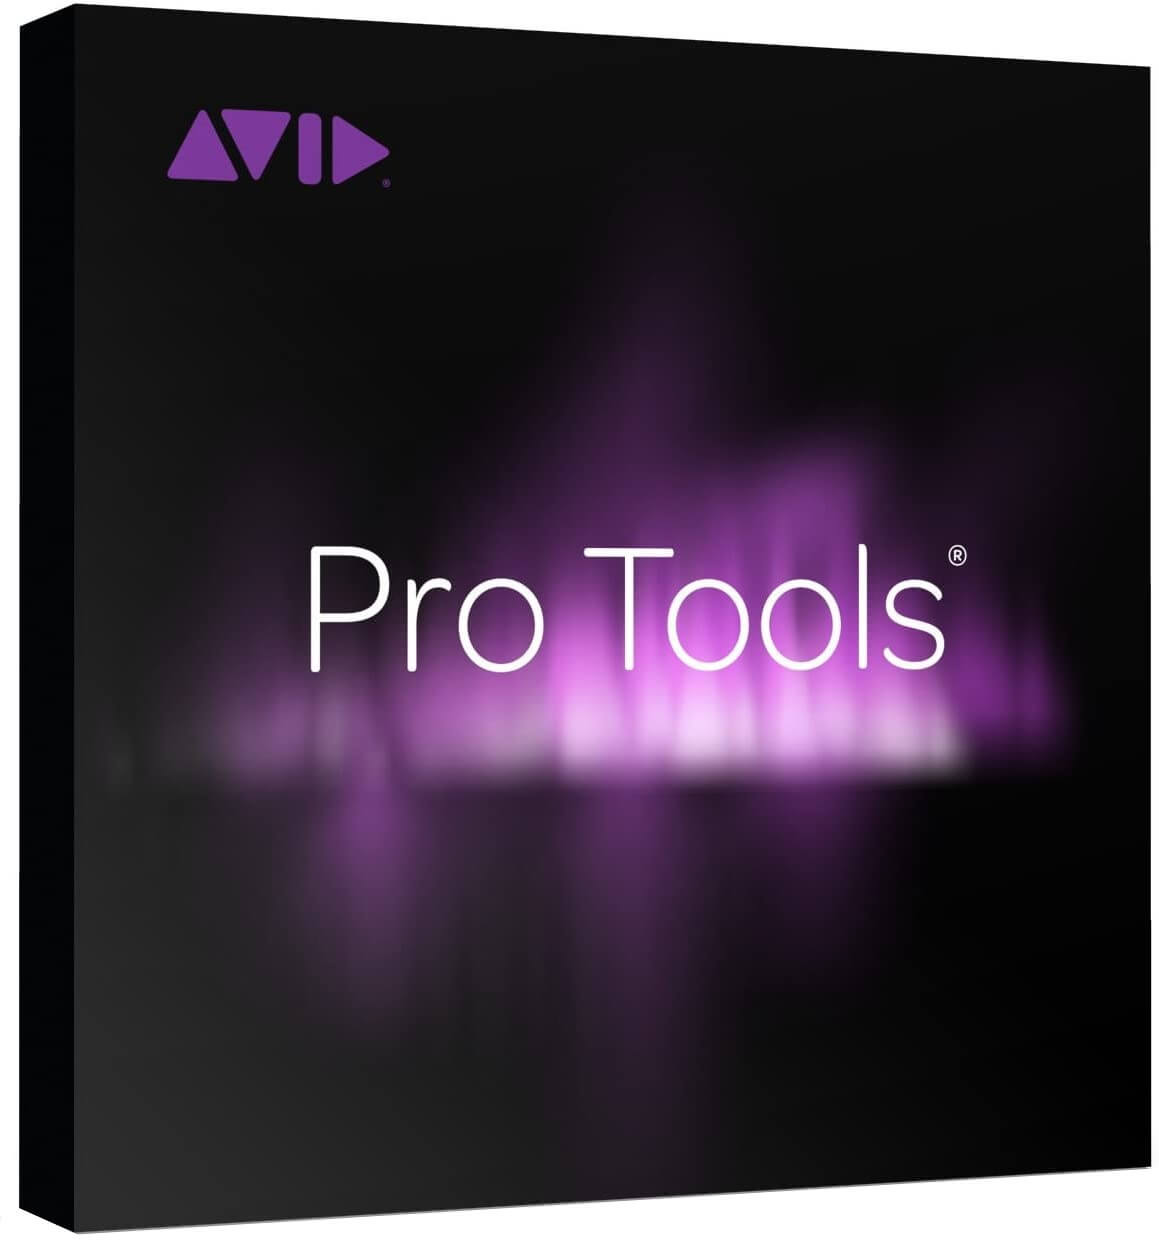 Avid Pro Tools Crack 2021.12 With Activation Code (Latest 2021)